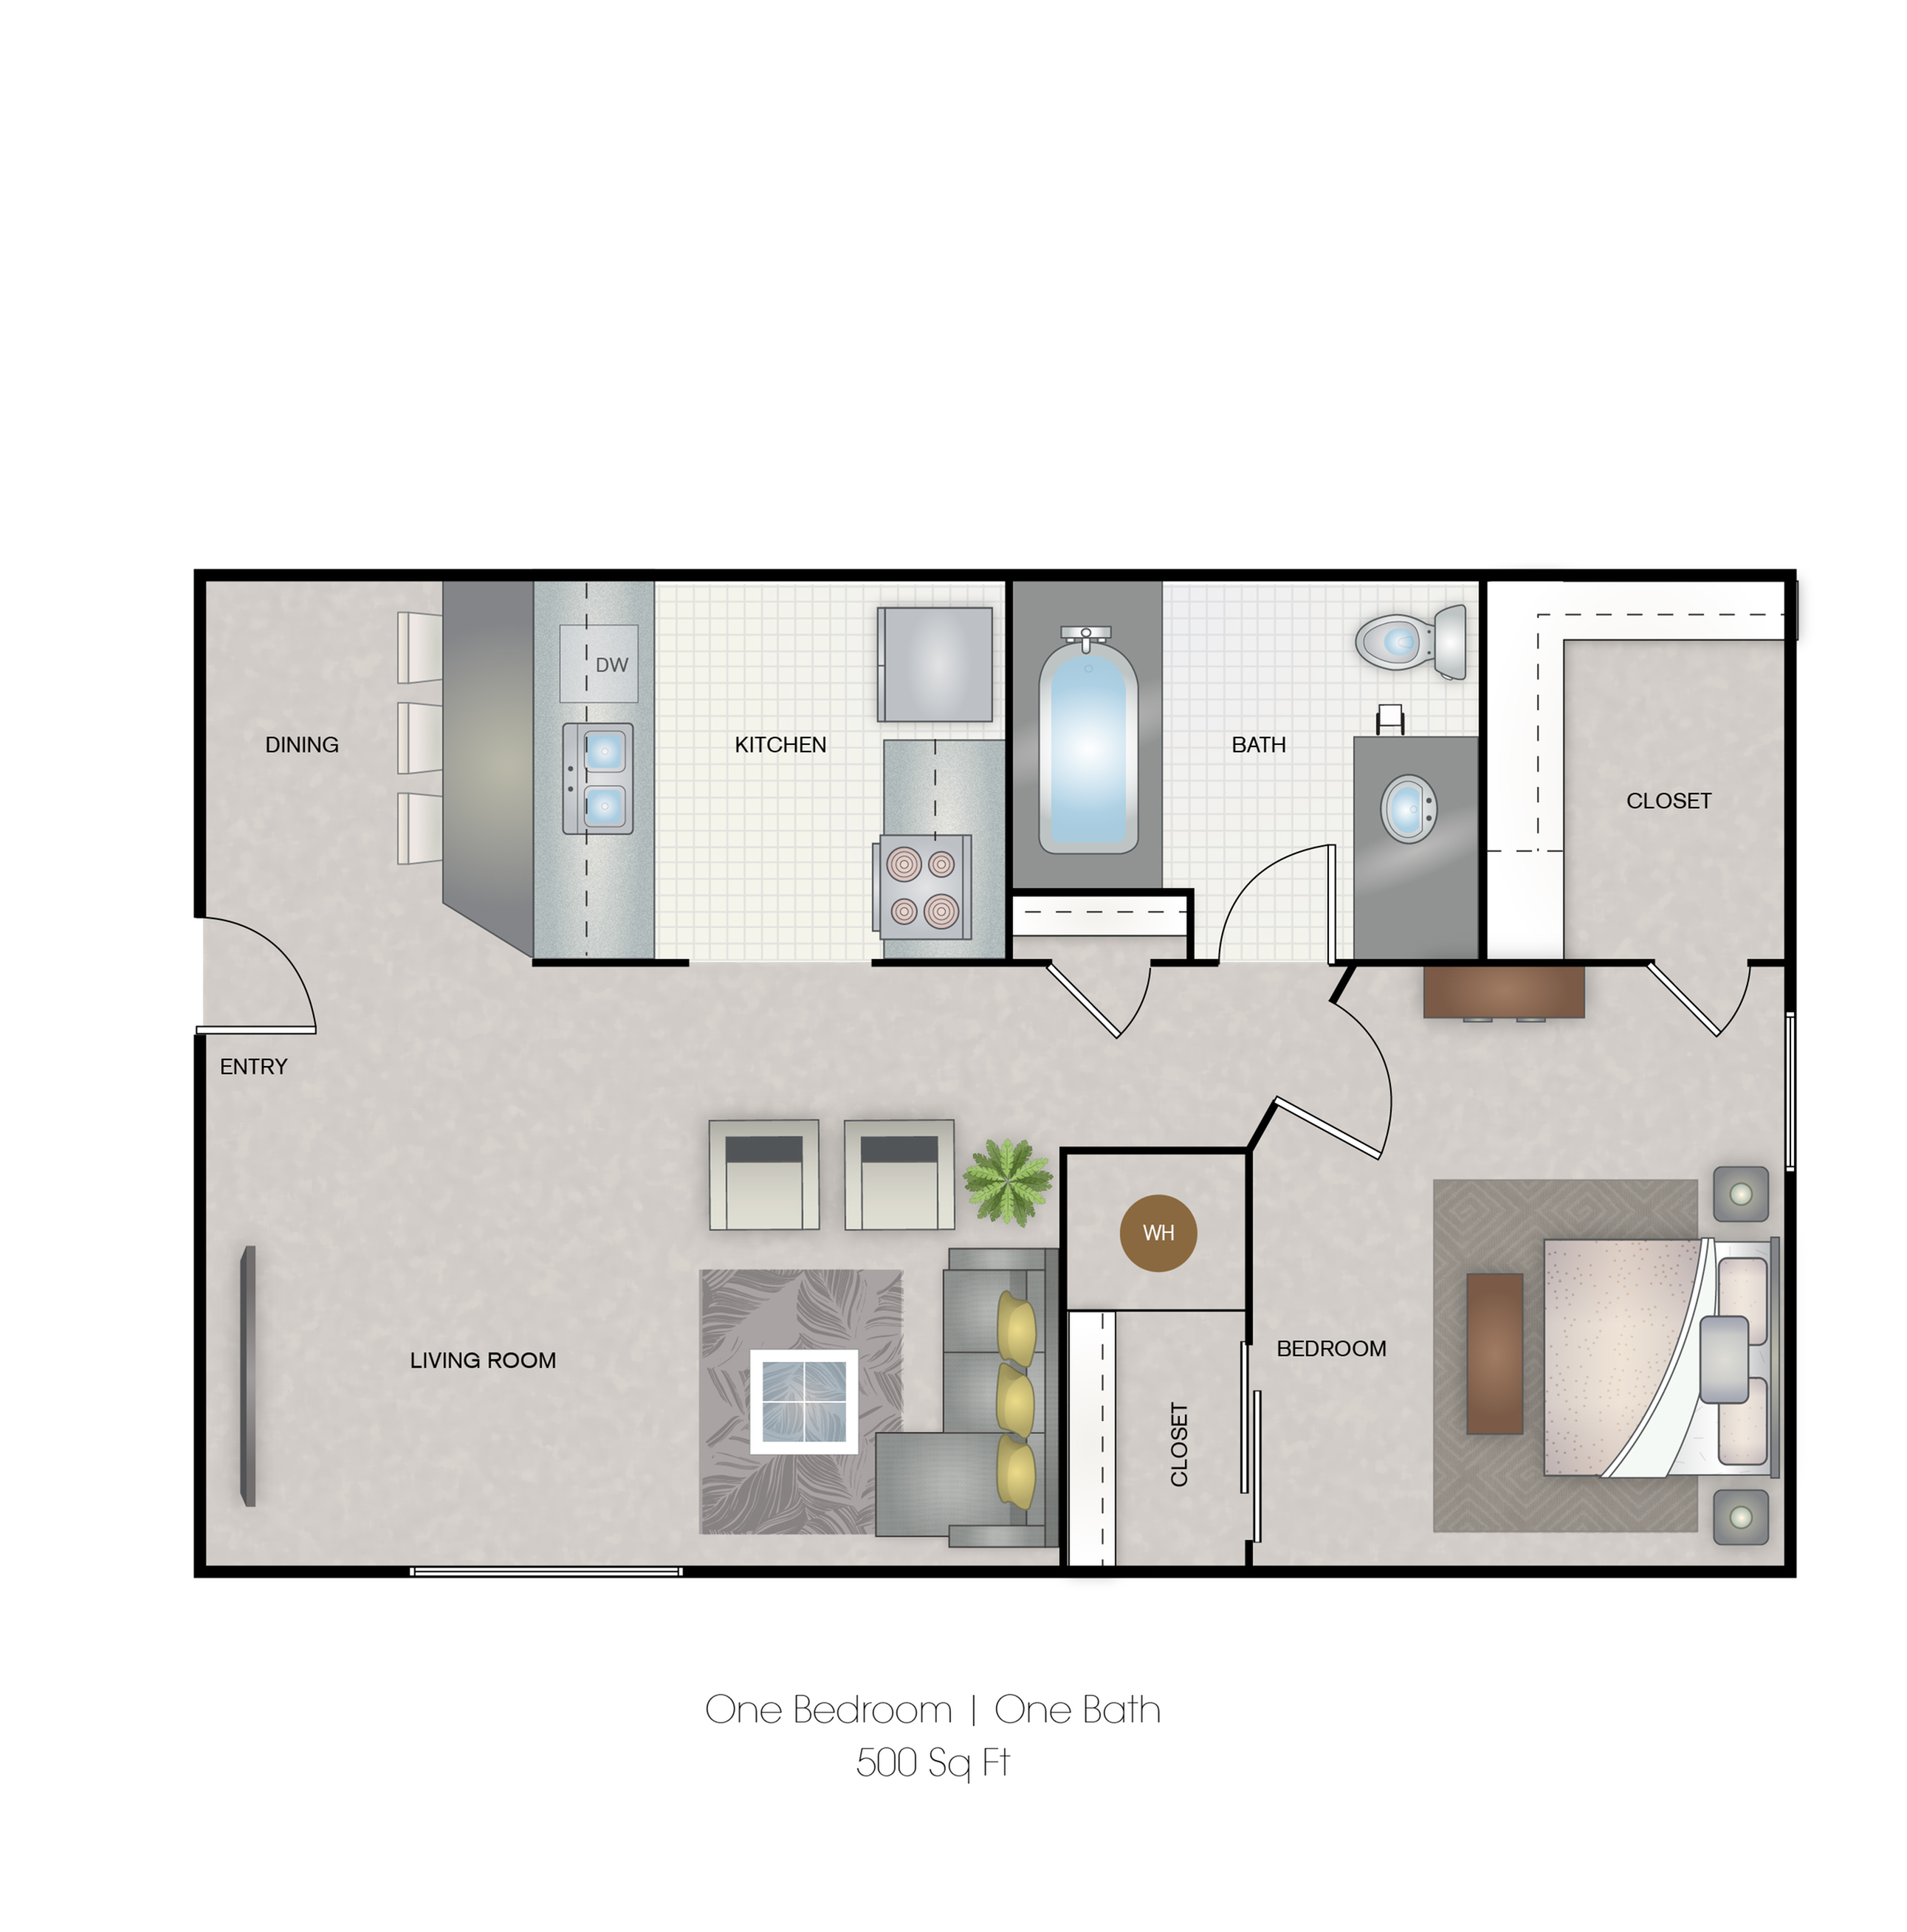 Small one bedroom with Washer/ Dryer